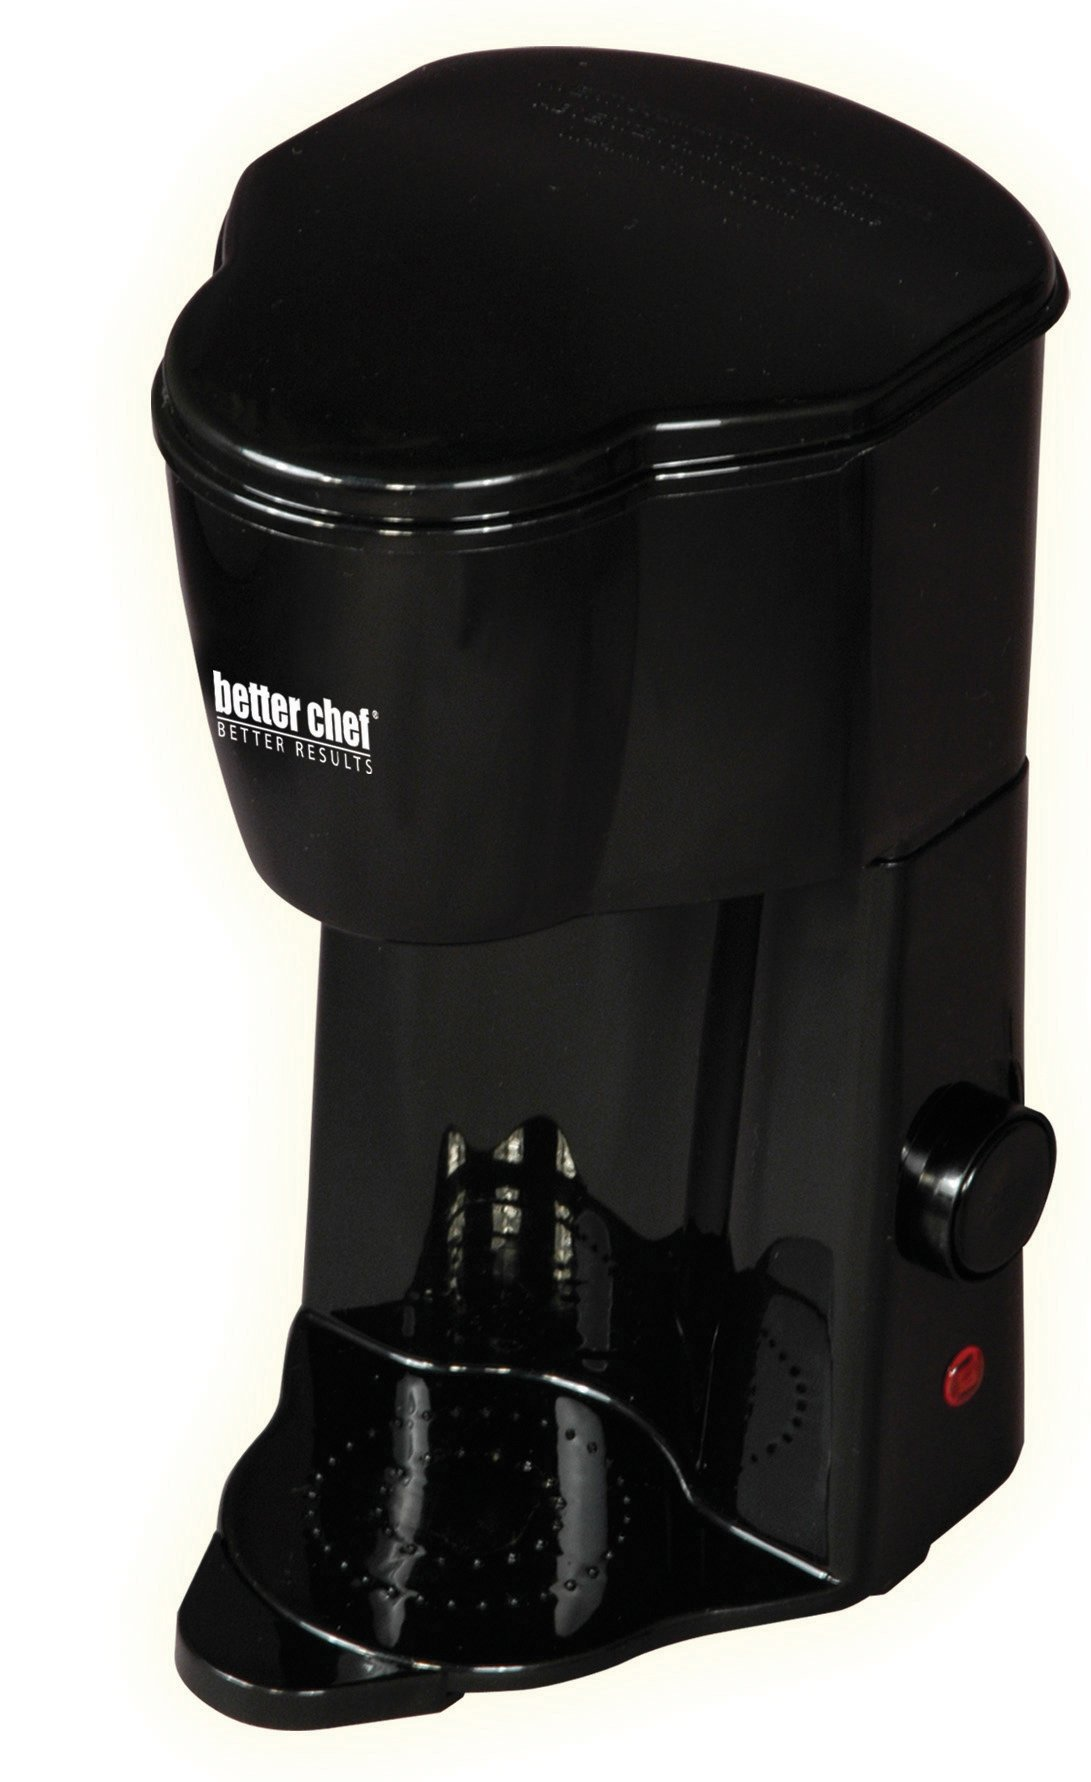 Better Chef IM-102B Compact Personal Coffee Maker | Brews up to 12 oz. | Compact Size | Use Grounds or Coffee Pods